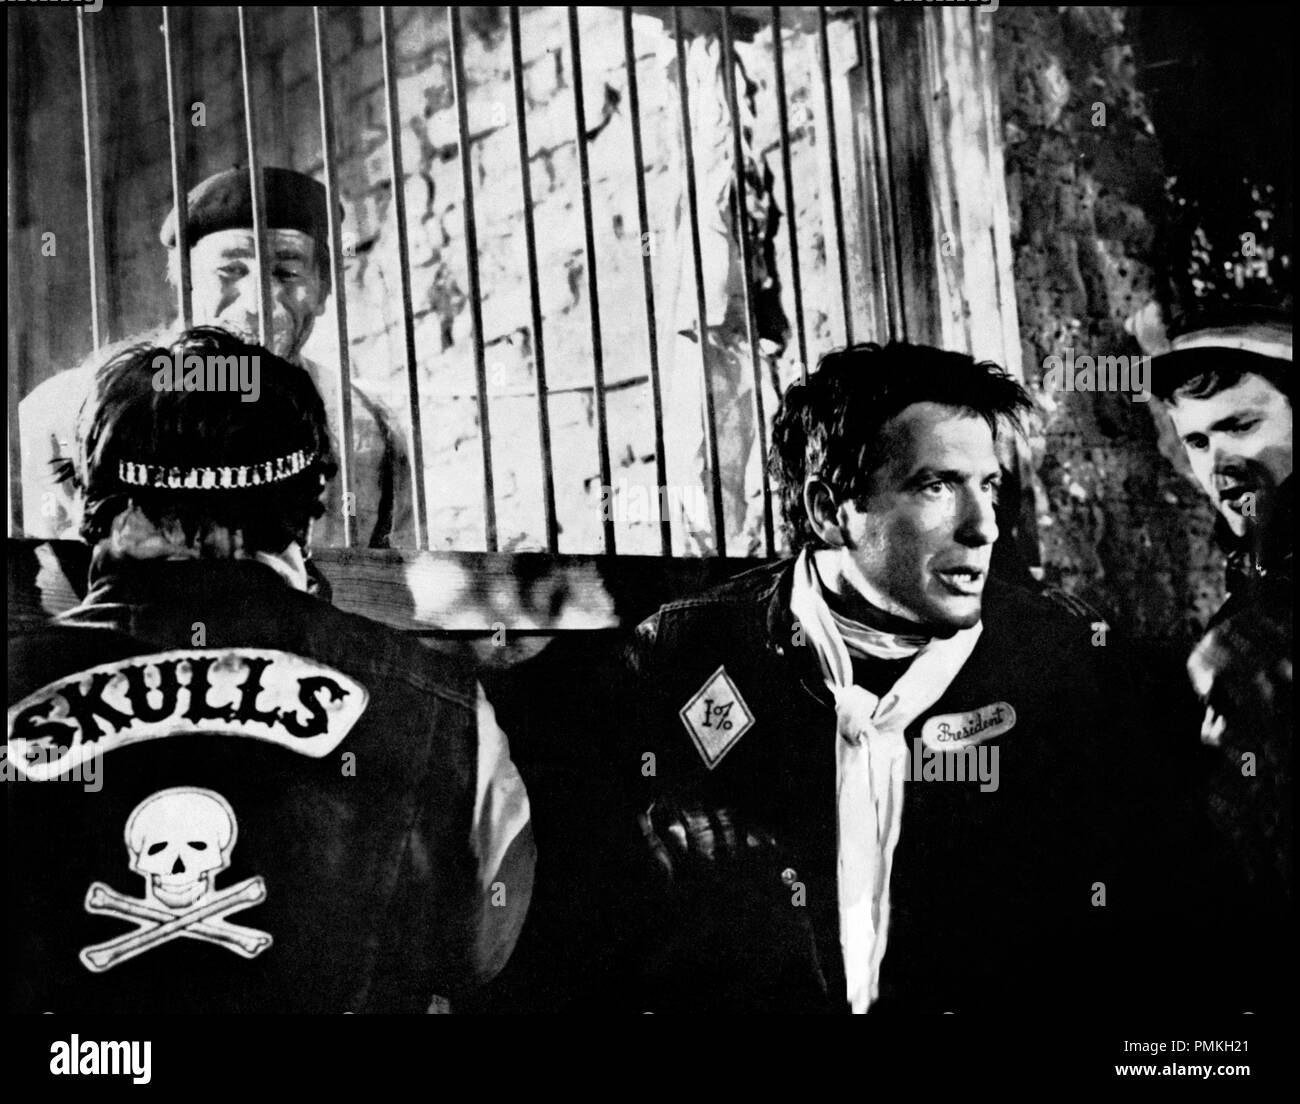 Hells Angels Black and White Stock Photos & Images - Alamy